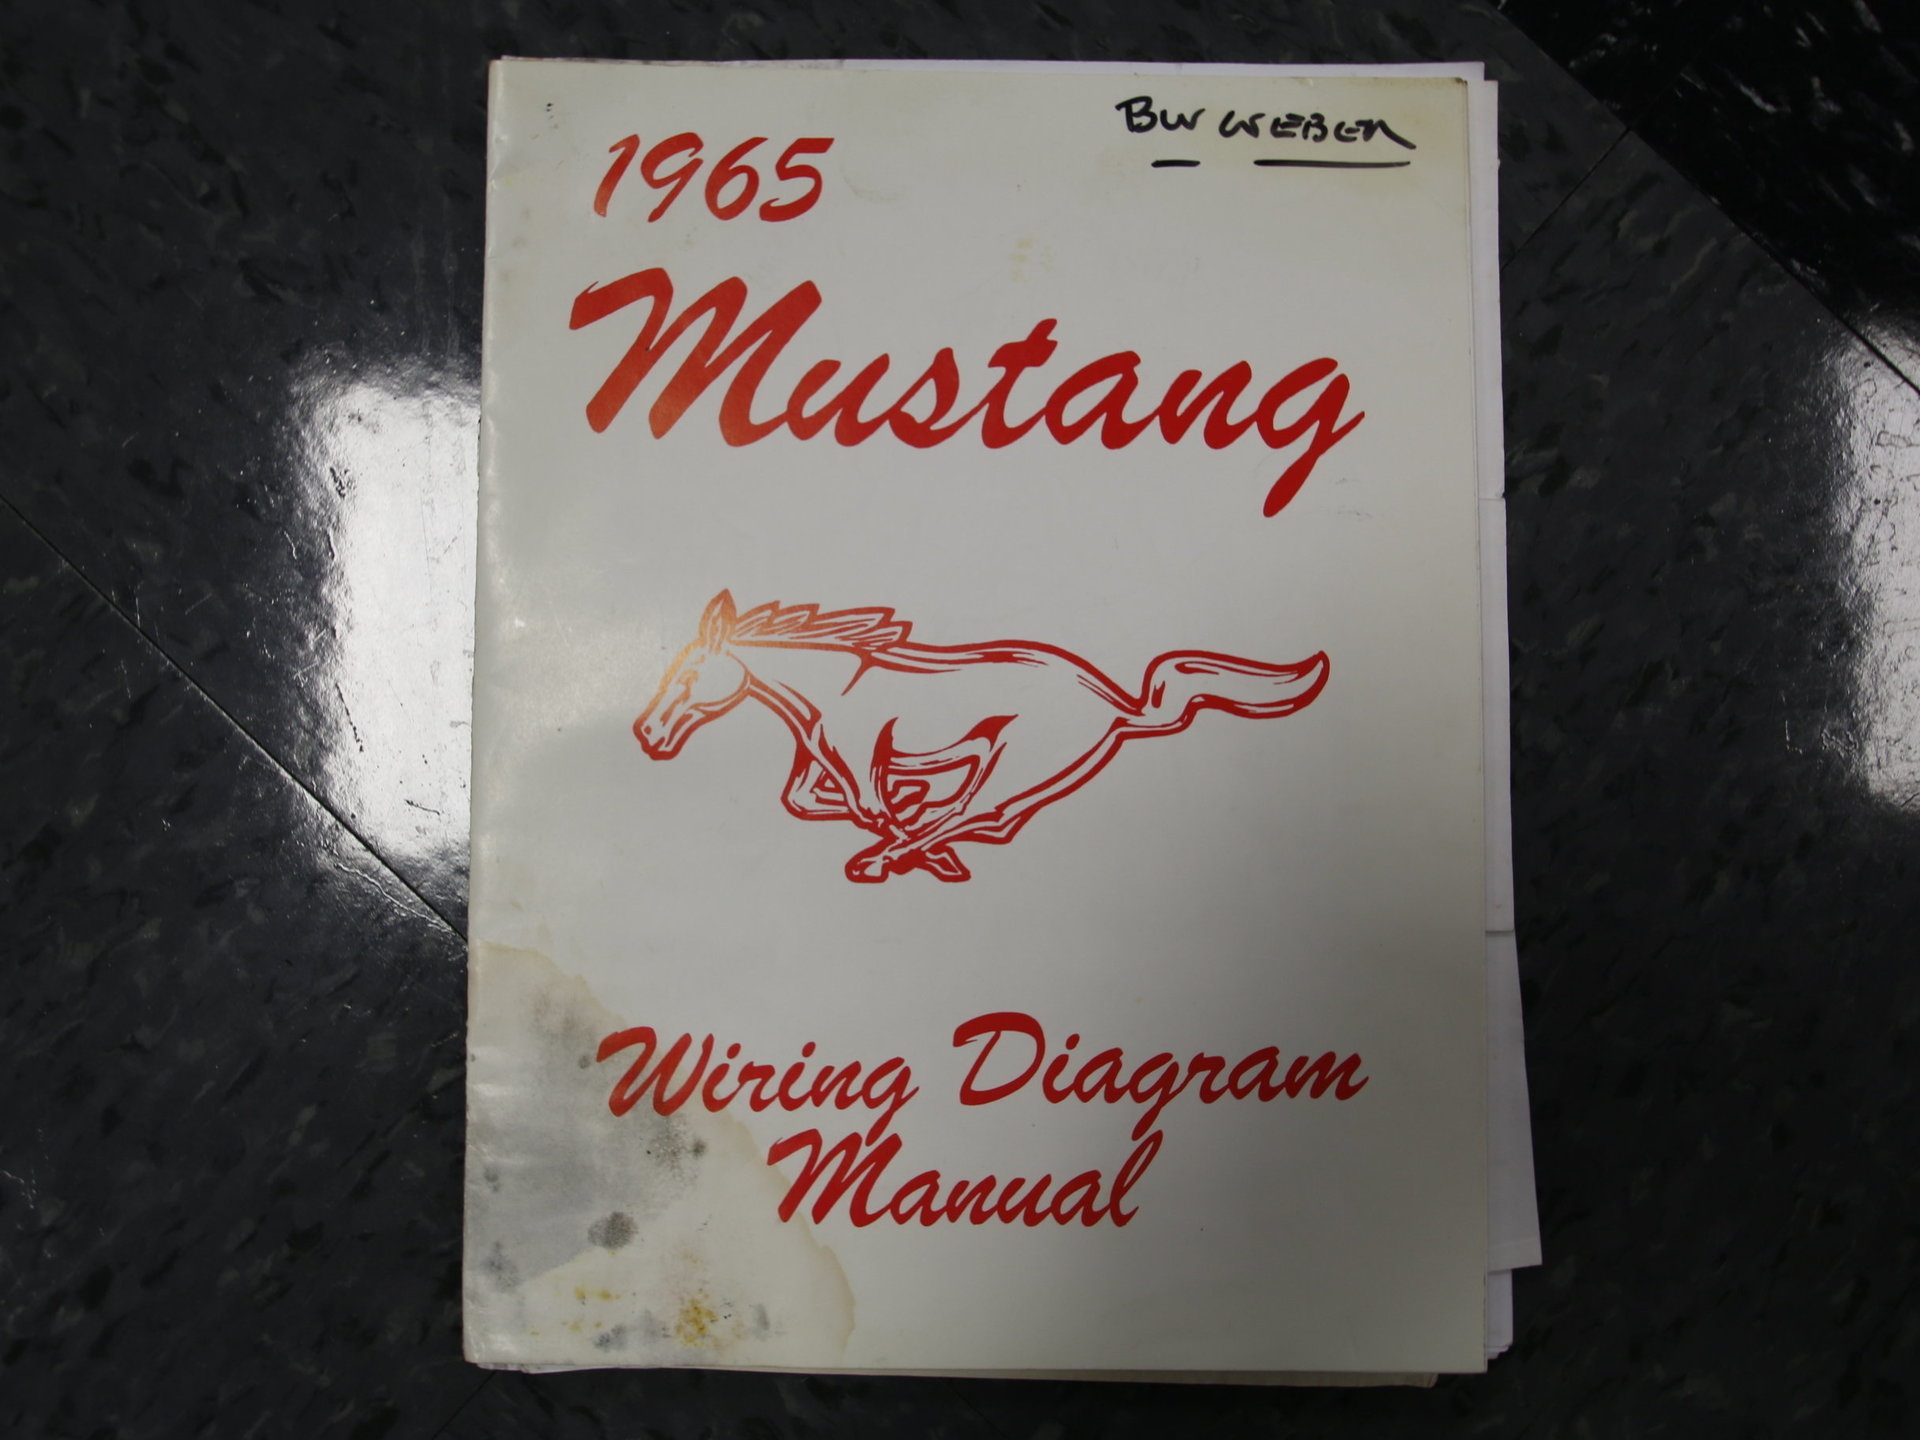 1965 Ford Mustang Streetside Classics The Nations Trusted Comet Wiring Diagram View 360